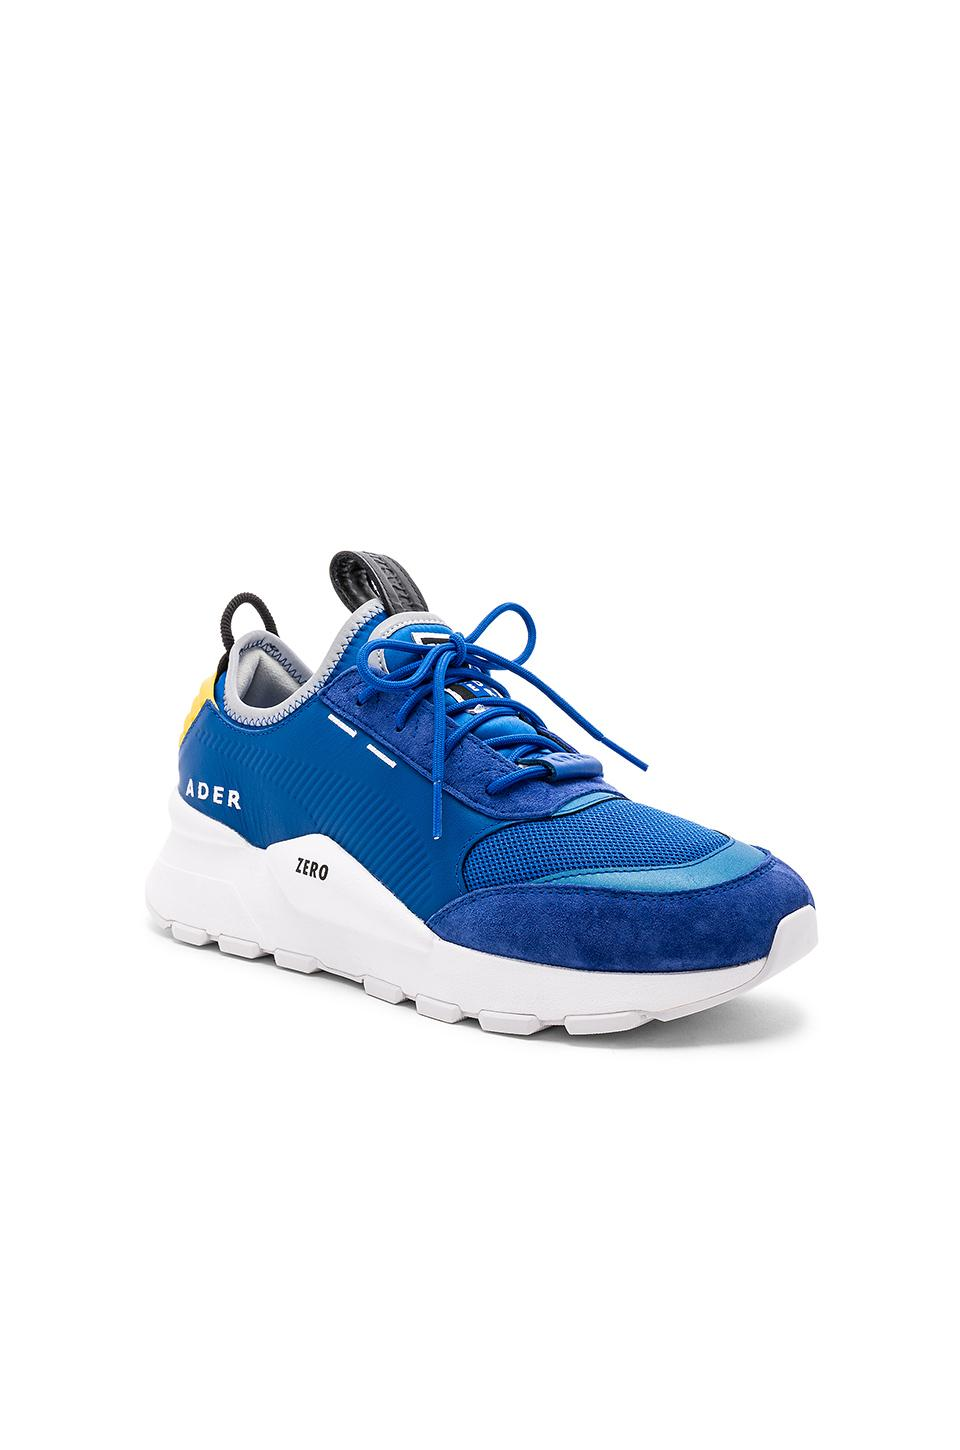 70b9260bc092f4 Puma Men s Ader Error Leather Trainer Sneakers In Blue